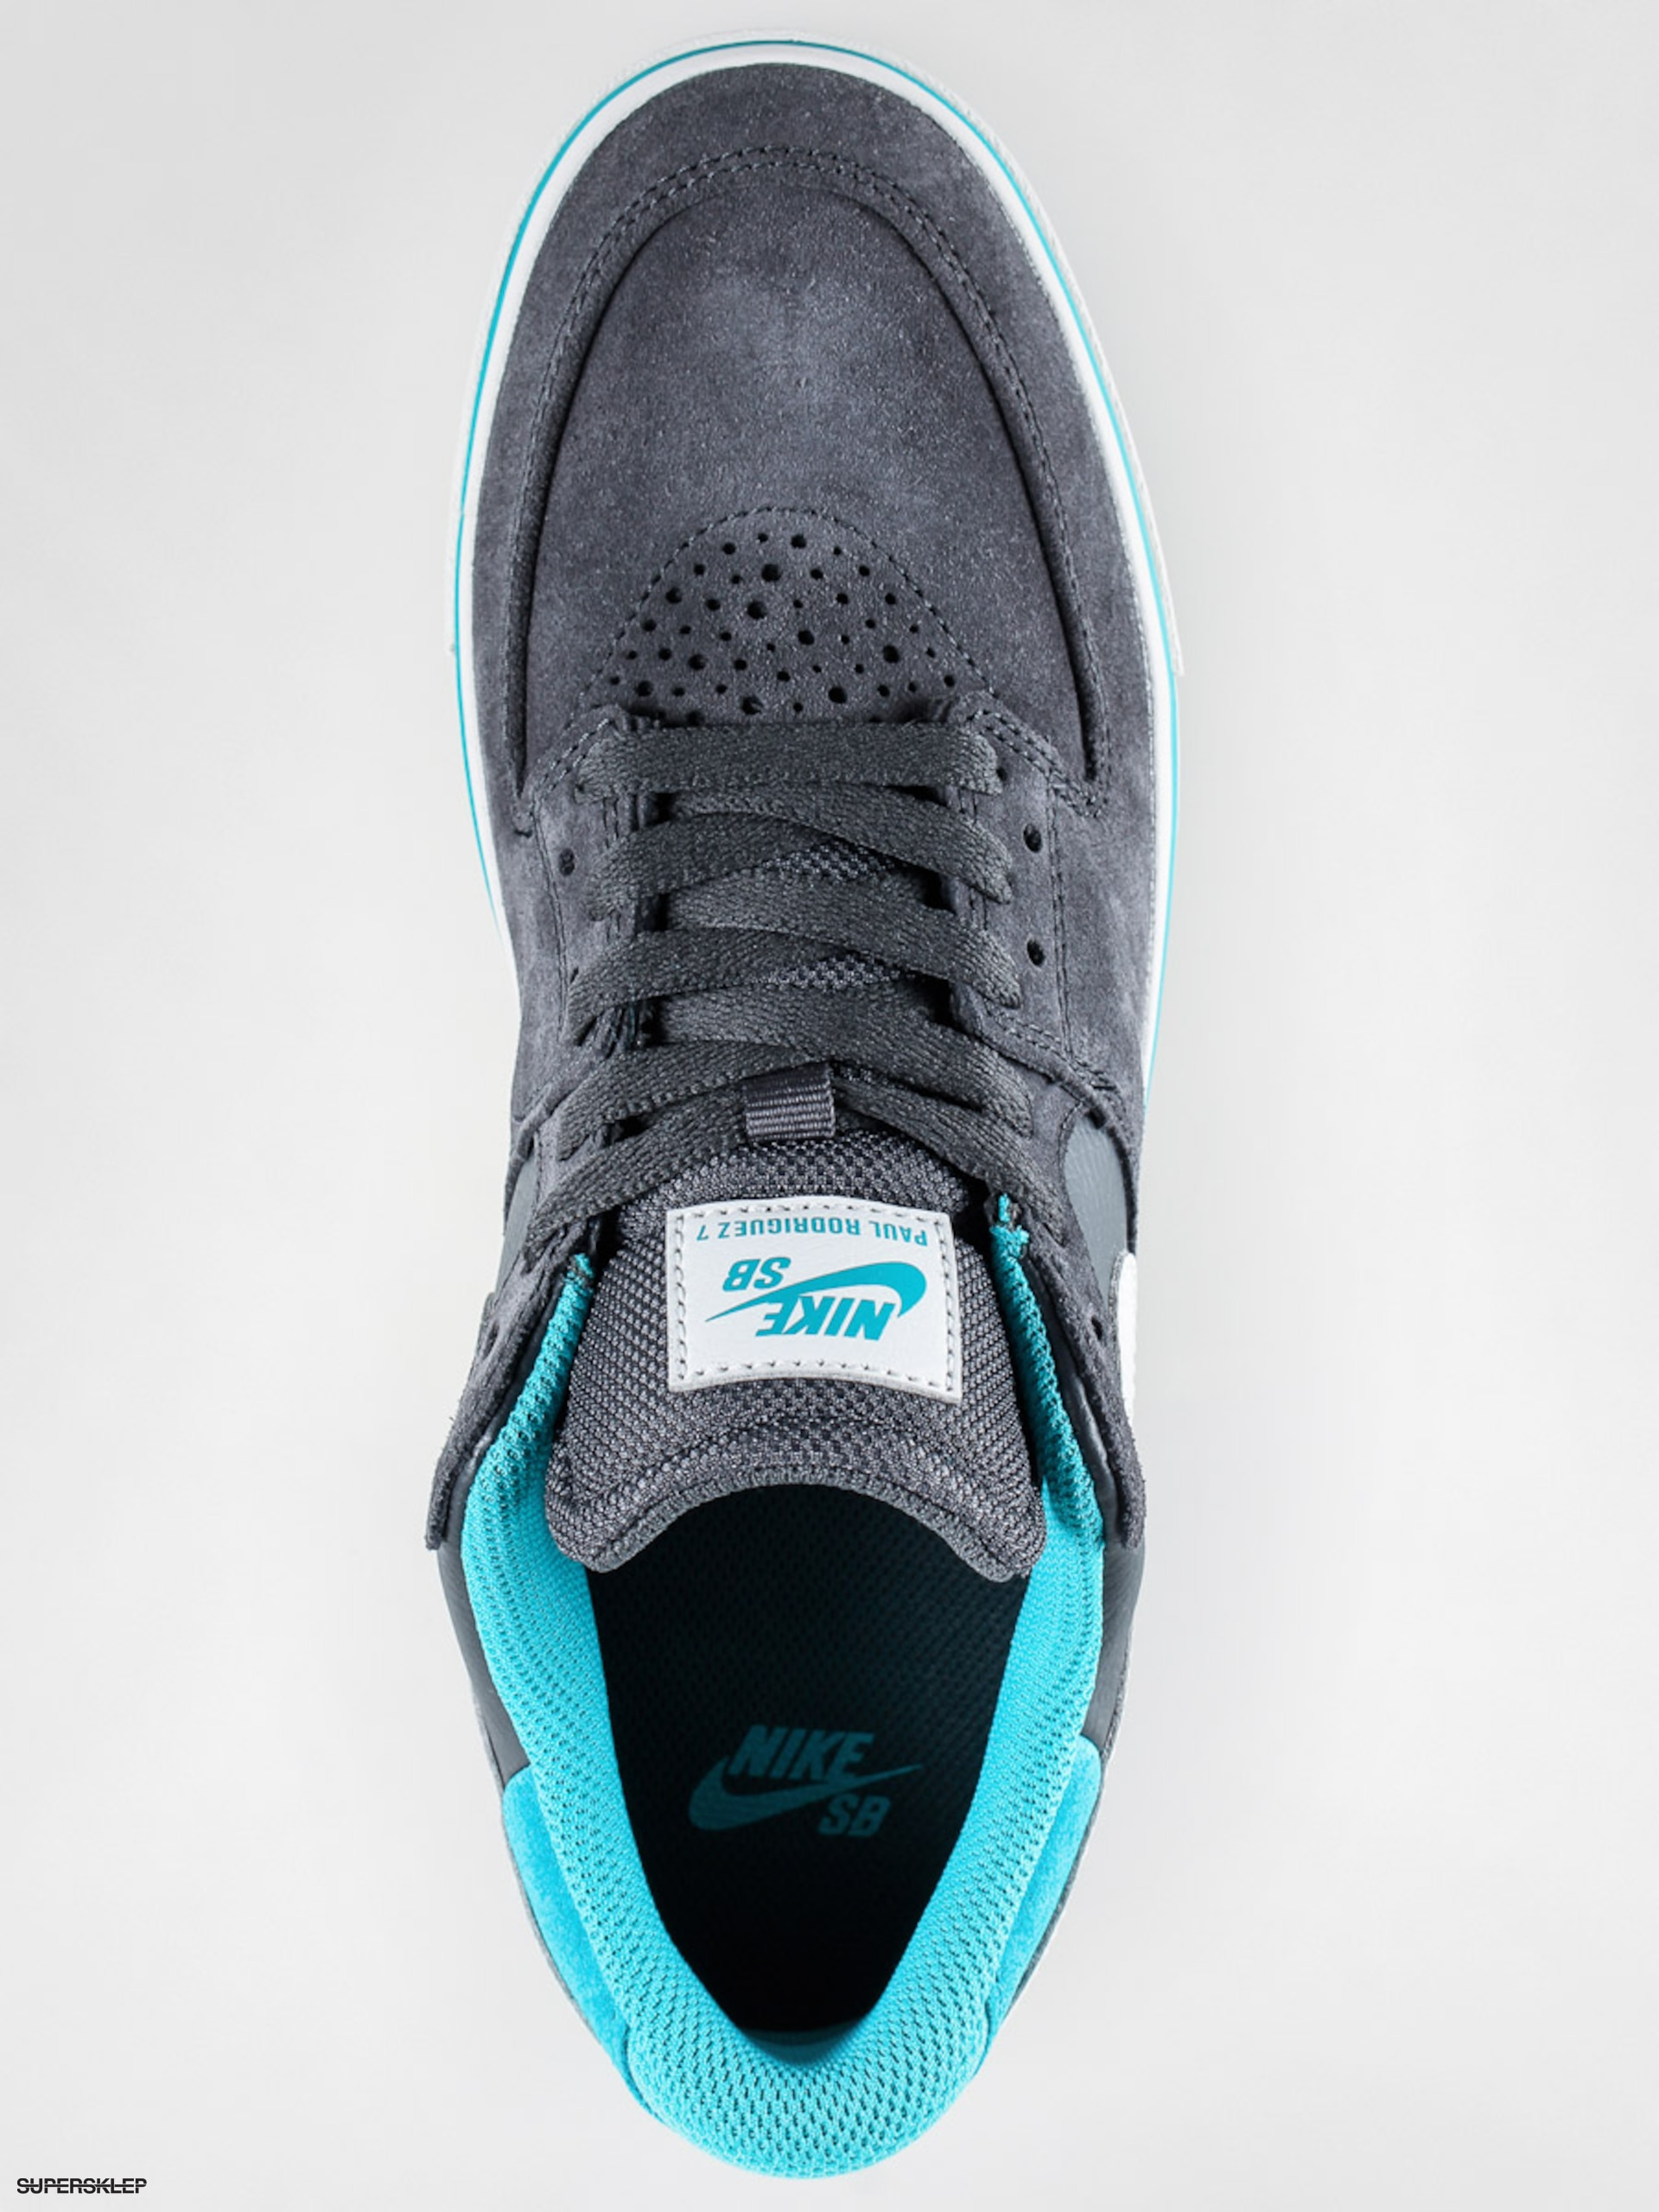 Boty Nike Paul Rodriguez 7 VR (anthracite/light bs grey ...